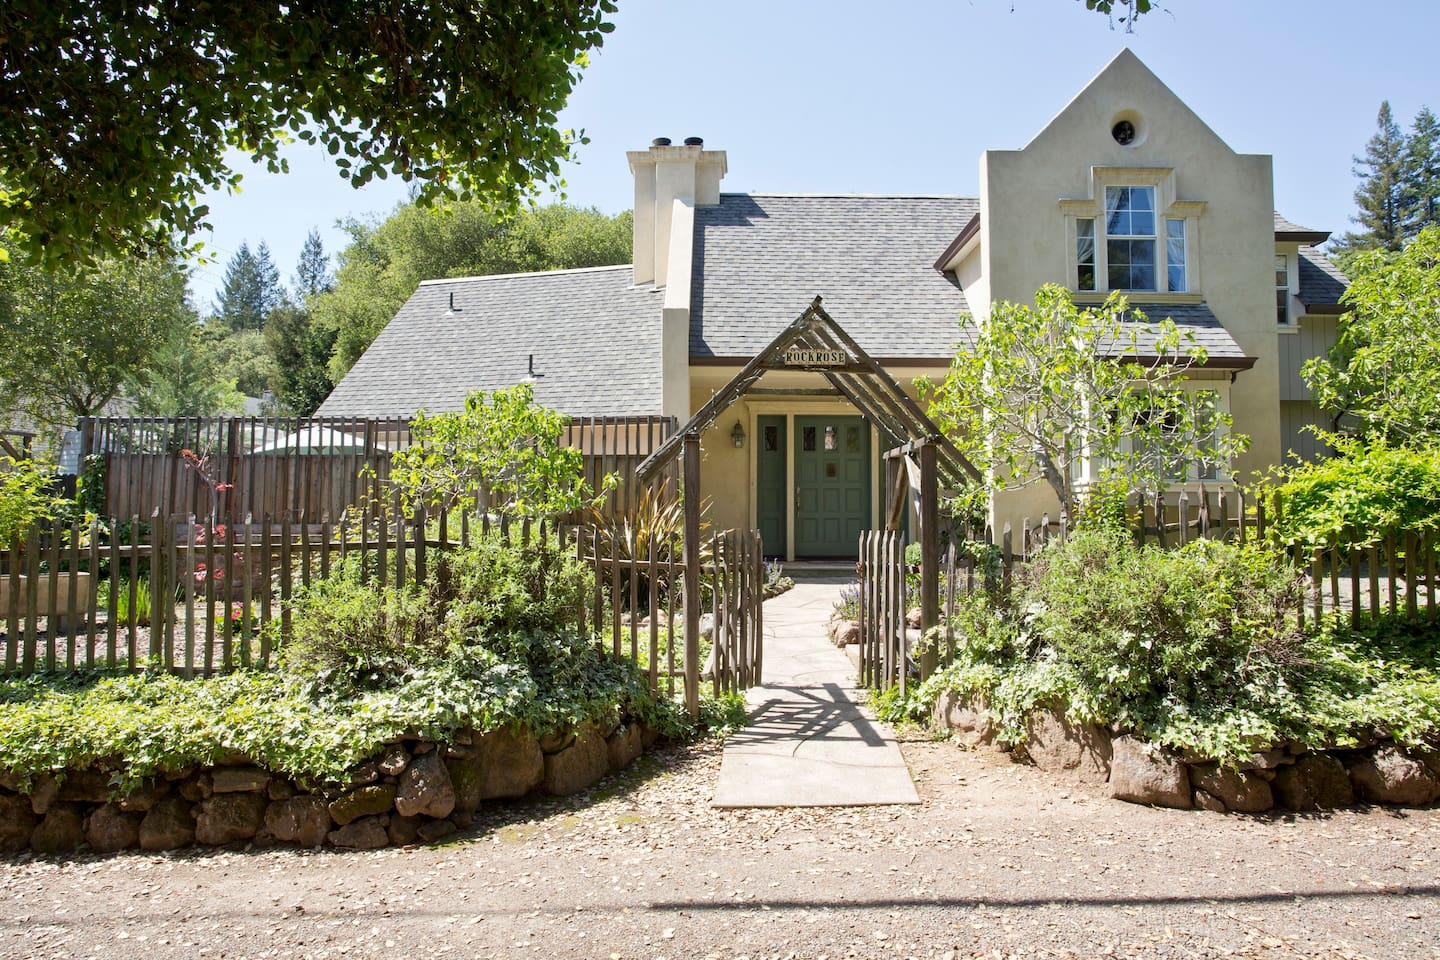 Rockrose Cottage Sonoma is tucked away in a very quiet yet convenient neighborhood.